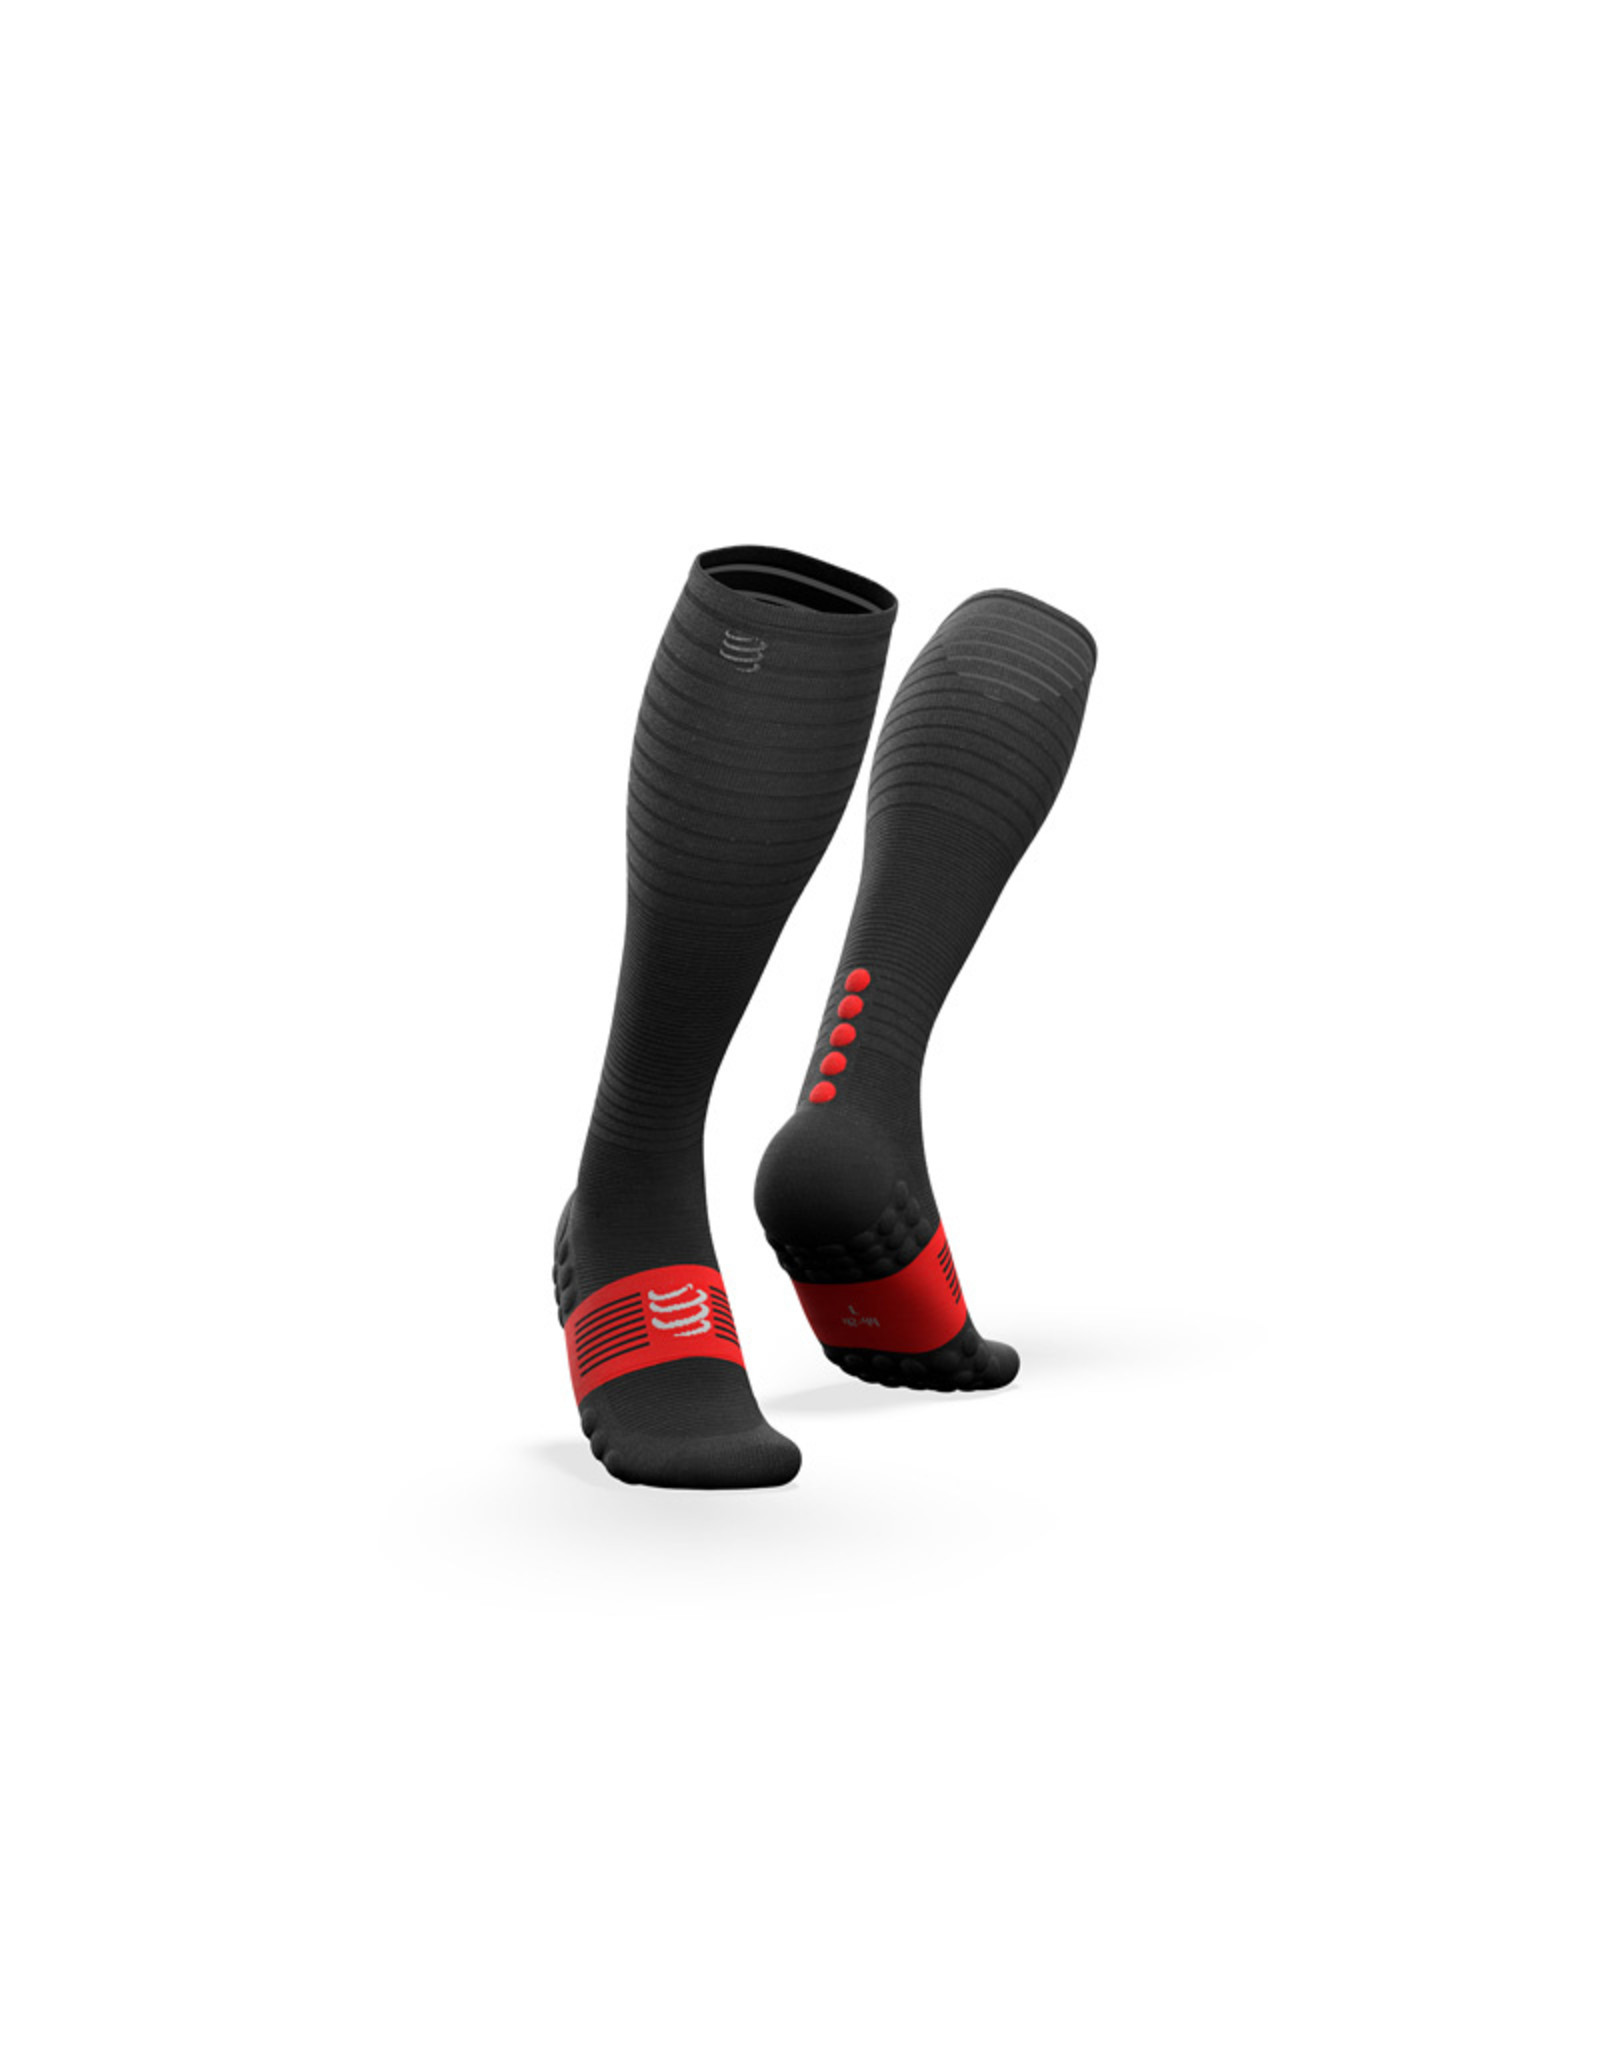 Compressport Full Socks Oxygen Compressiesokken - Zwart